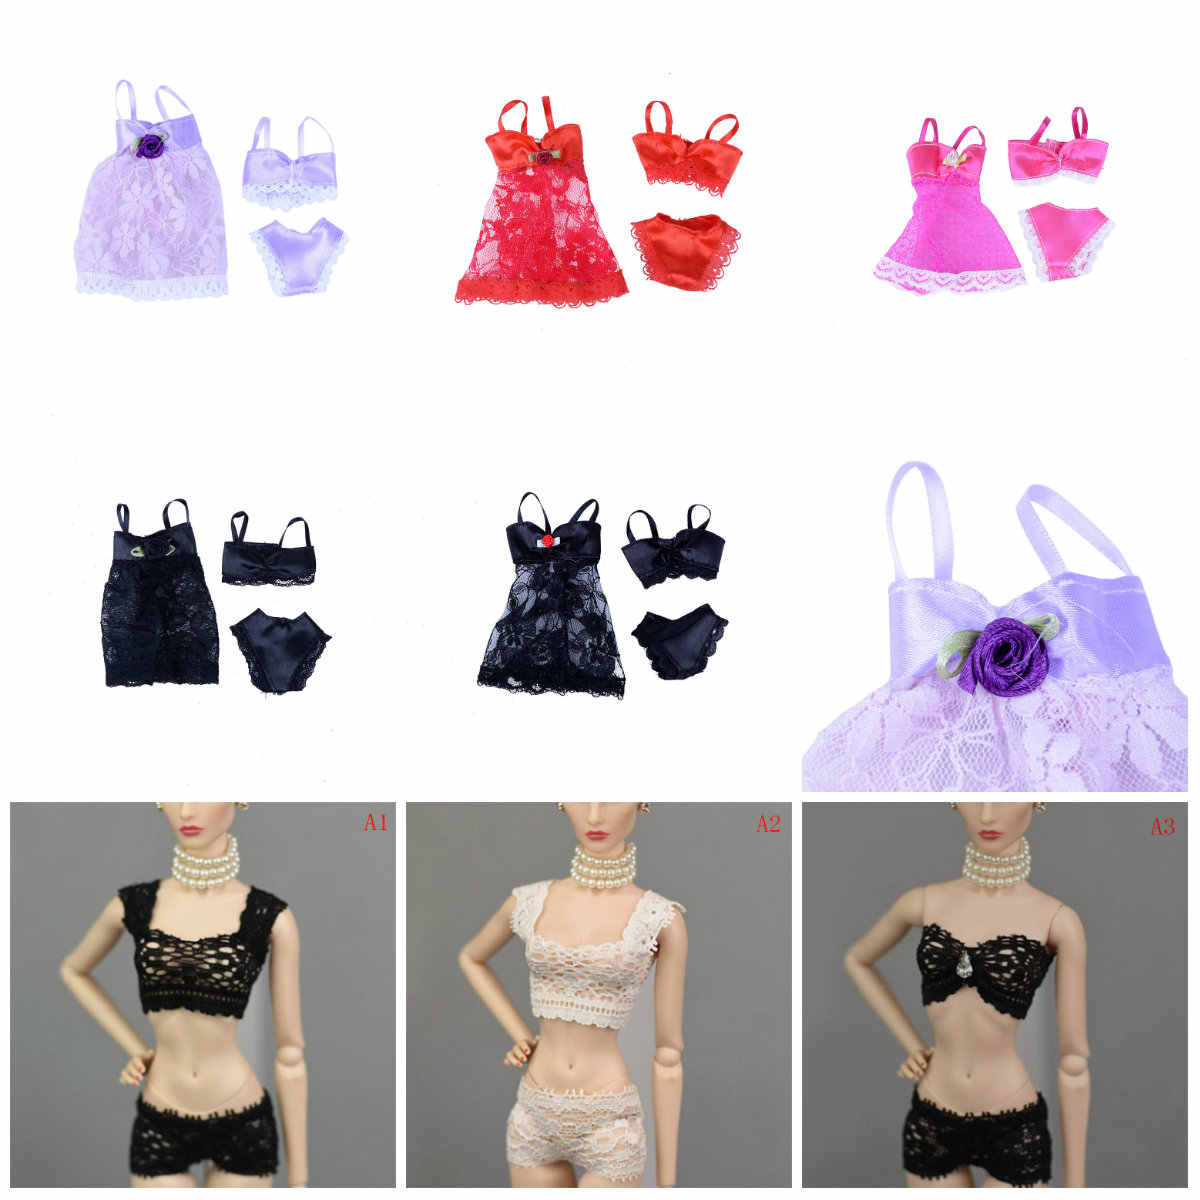 3 Pcs/Set Sexy Pajamas Lingerie Lace Costumes + Bra + Underwear Dress Clothes For girl Doll Clothes Accessories Girl Toy